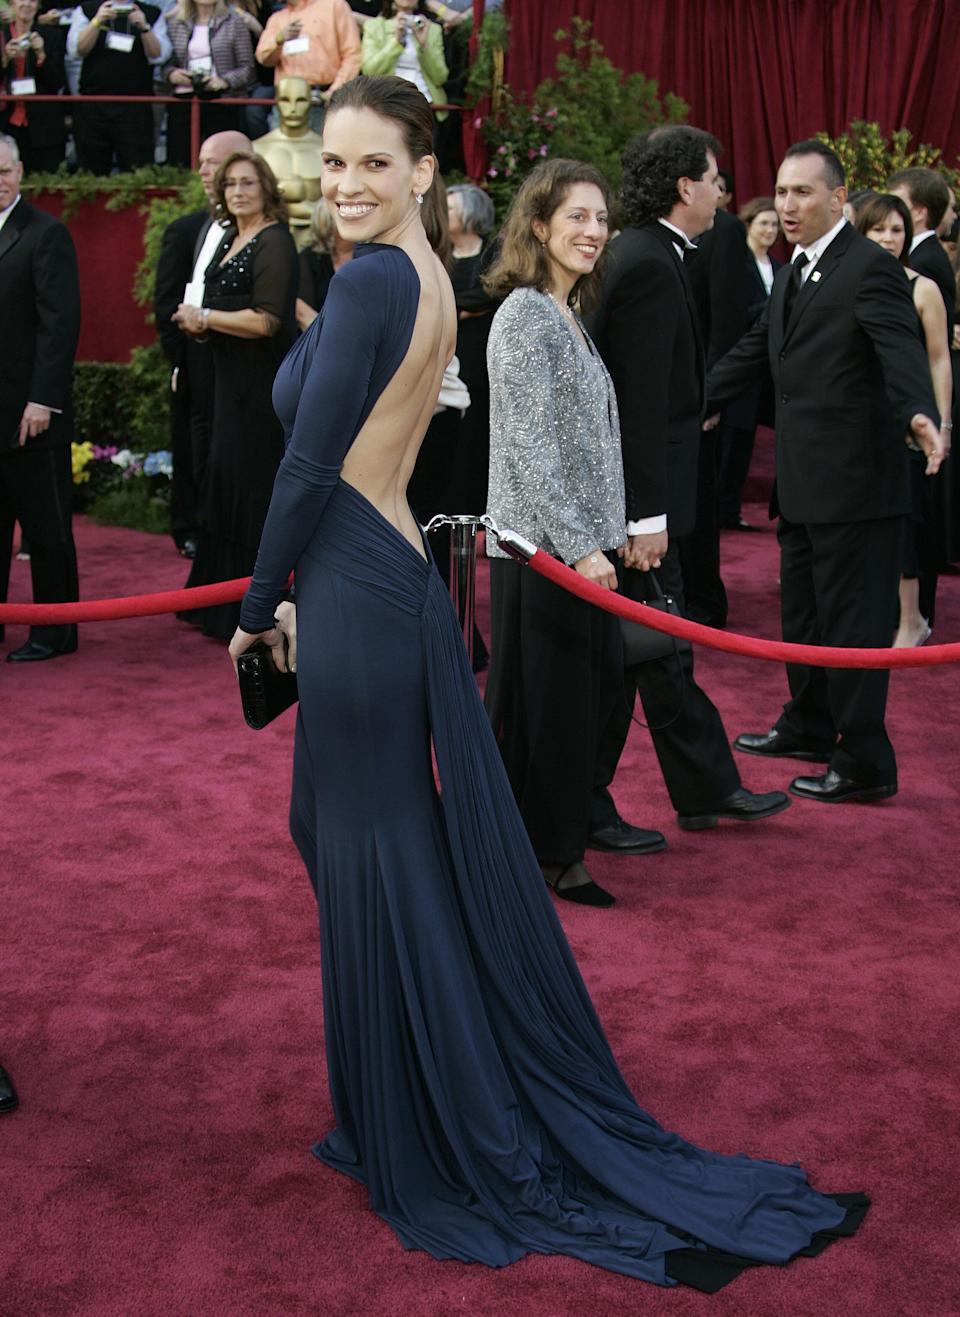 """<p>Swank accepted her second Best Actress Oscar for her role in """"Million Dollar Baby"""" in a jaw-dropping navy blue backless gown by French designer Guy Laroche.</p>"""